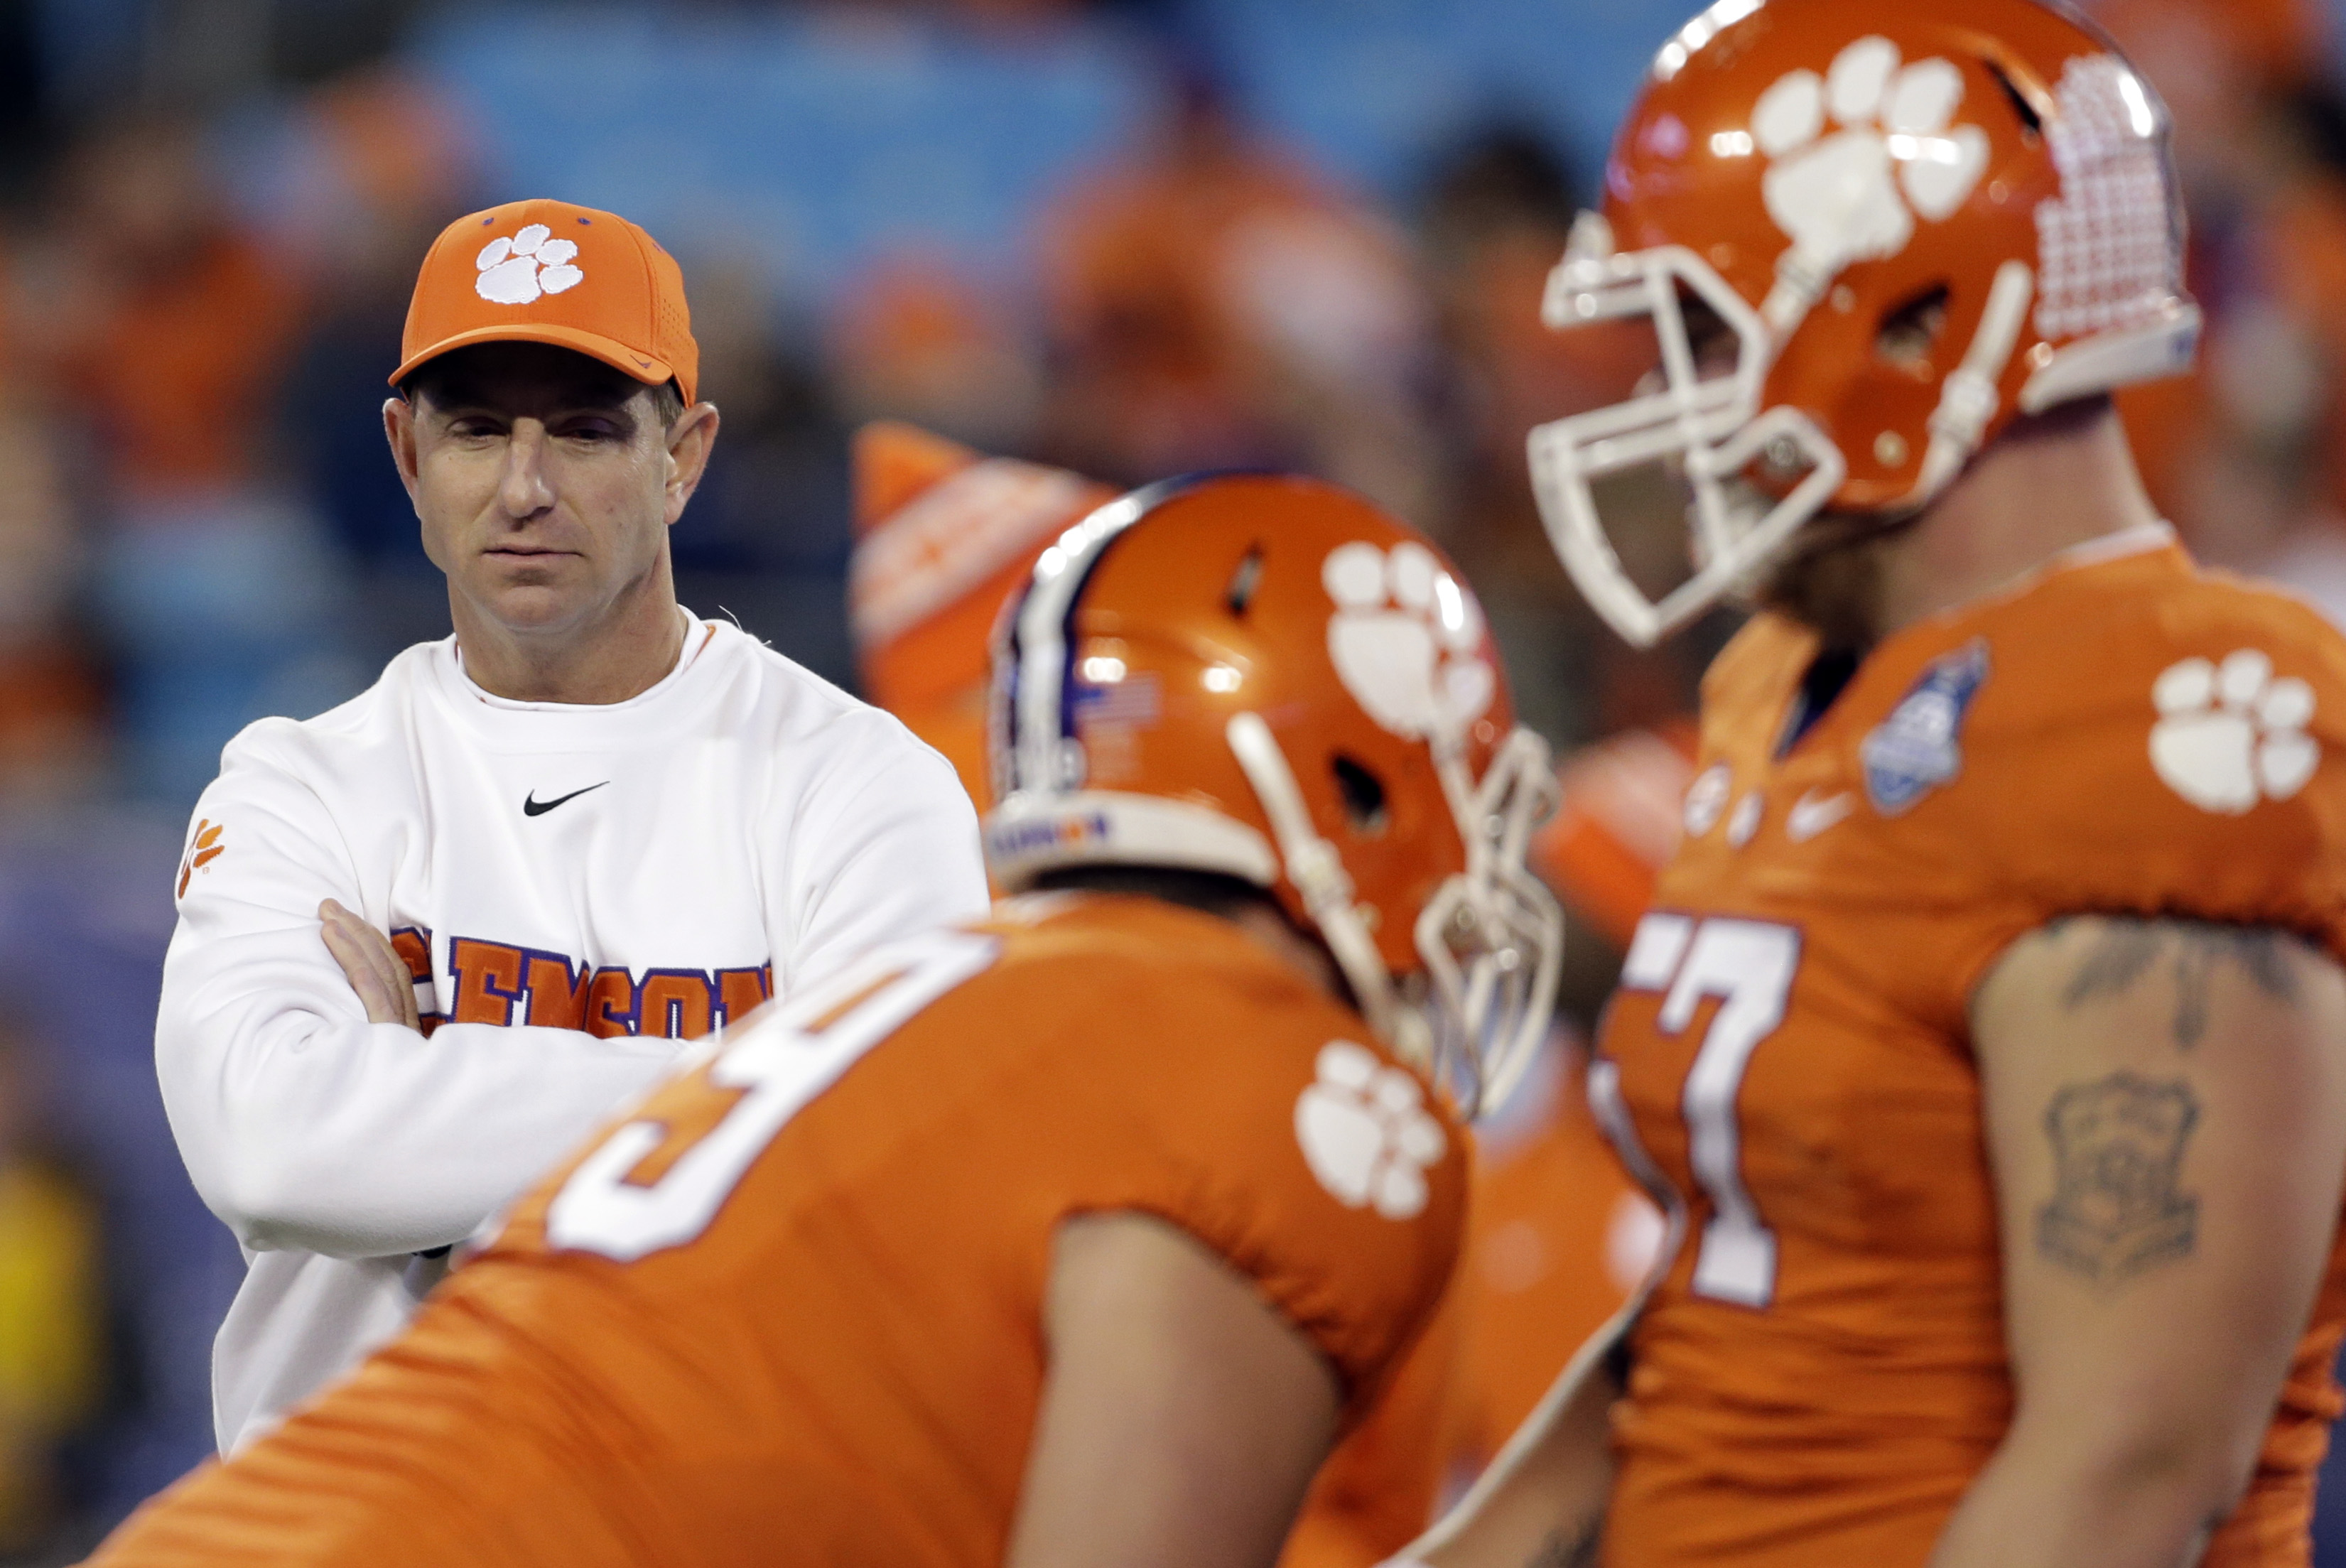 FILE - In this Dec. 5, 2015, file phot, Clemson head coach Dabo Swinney watches prior to the Atlantic Coast Conference championship NCAA college football game against North Carolina in Charlotte, N.C. Three SEC-ACC matchups and Pittsburgh RB James Conners